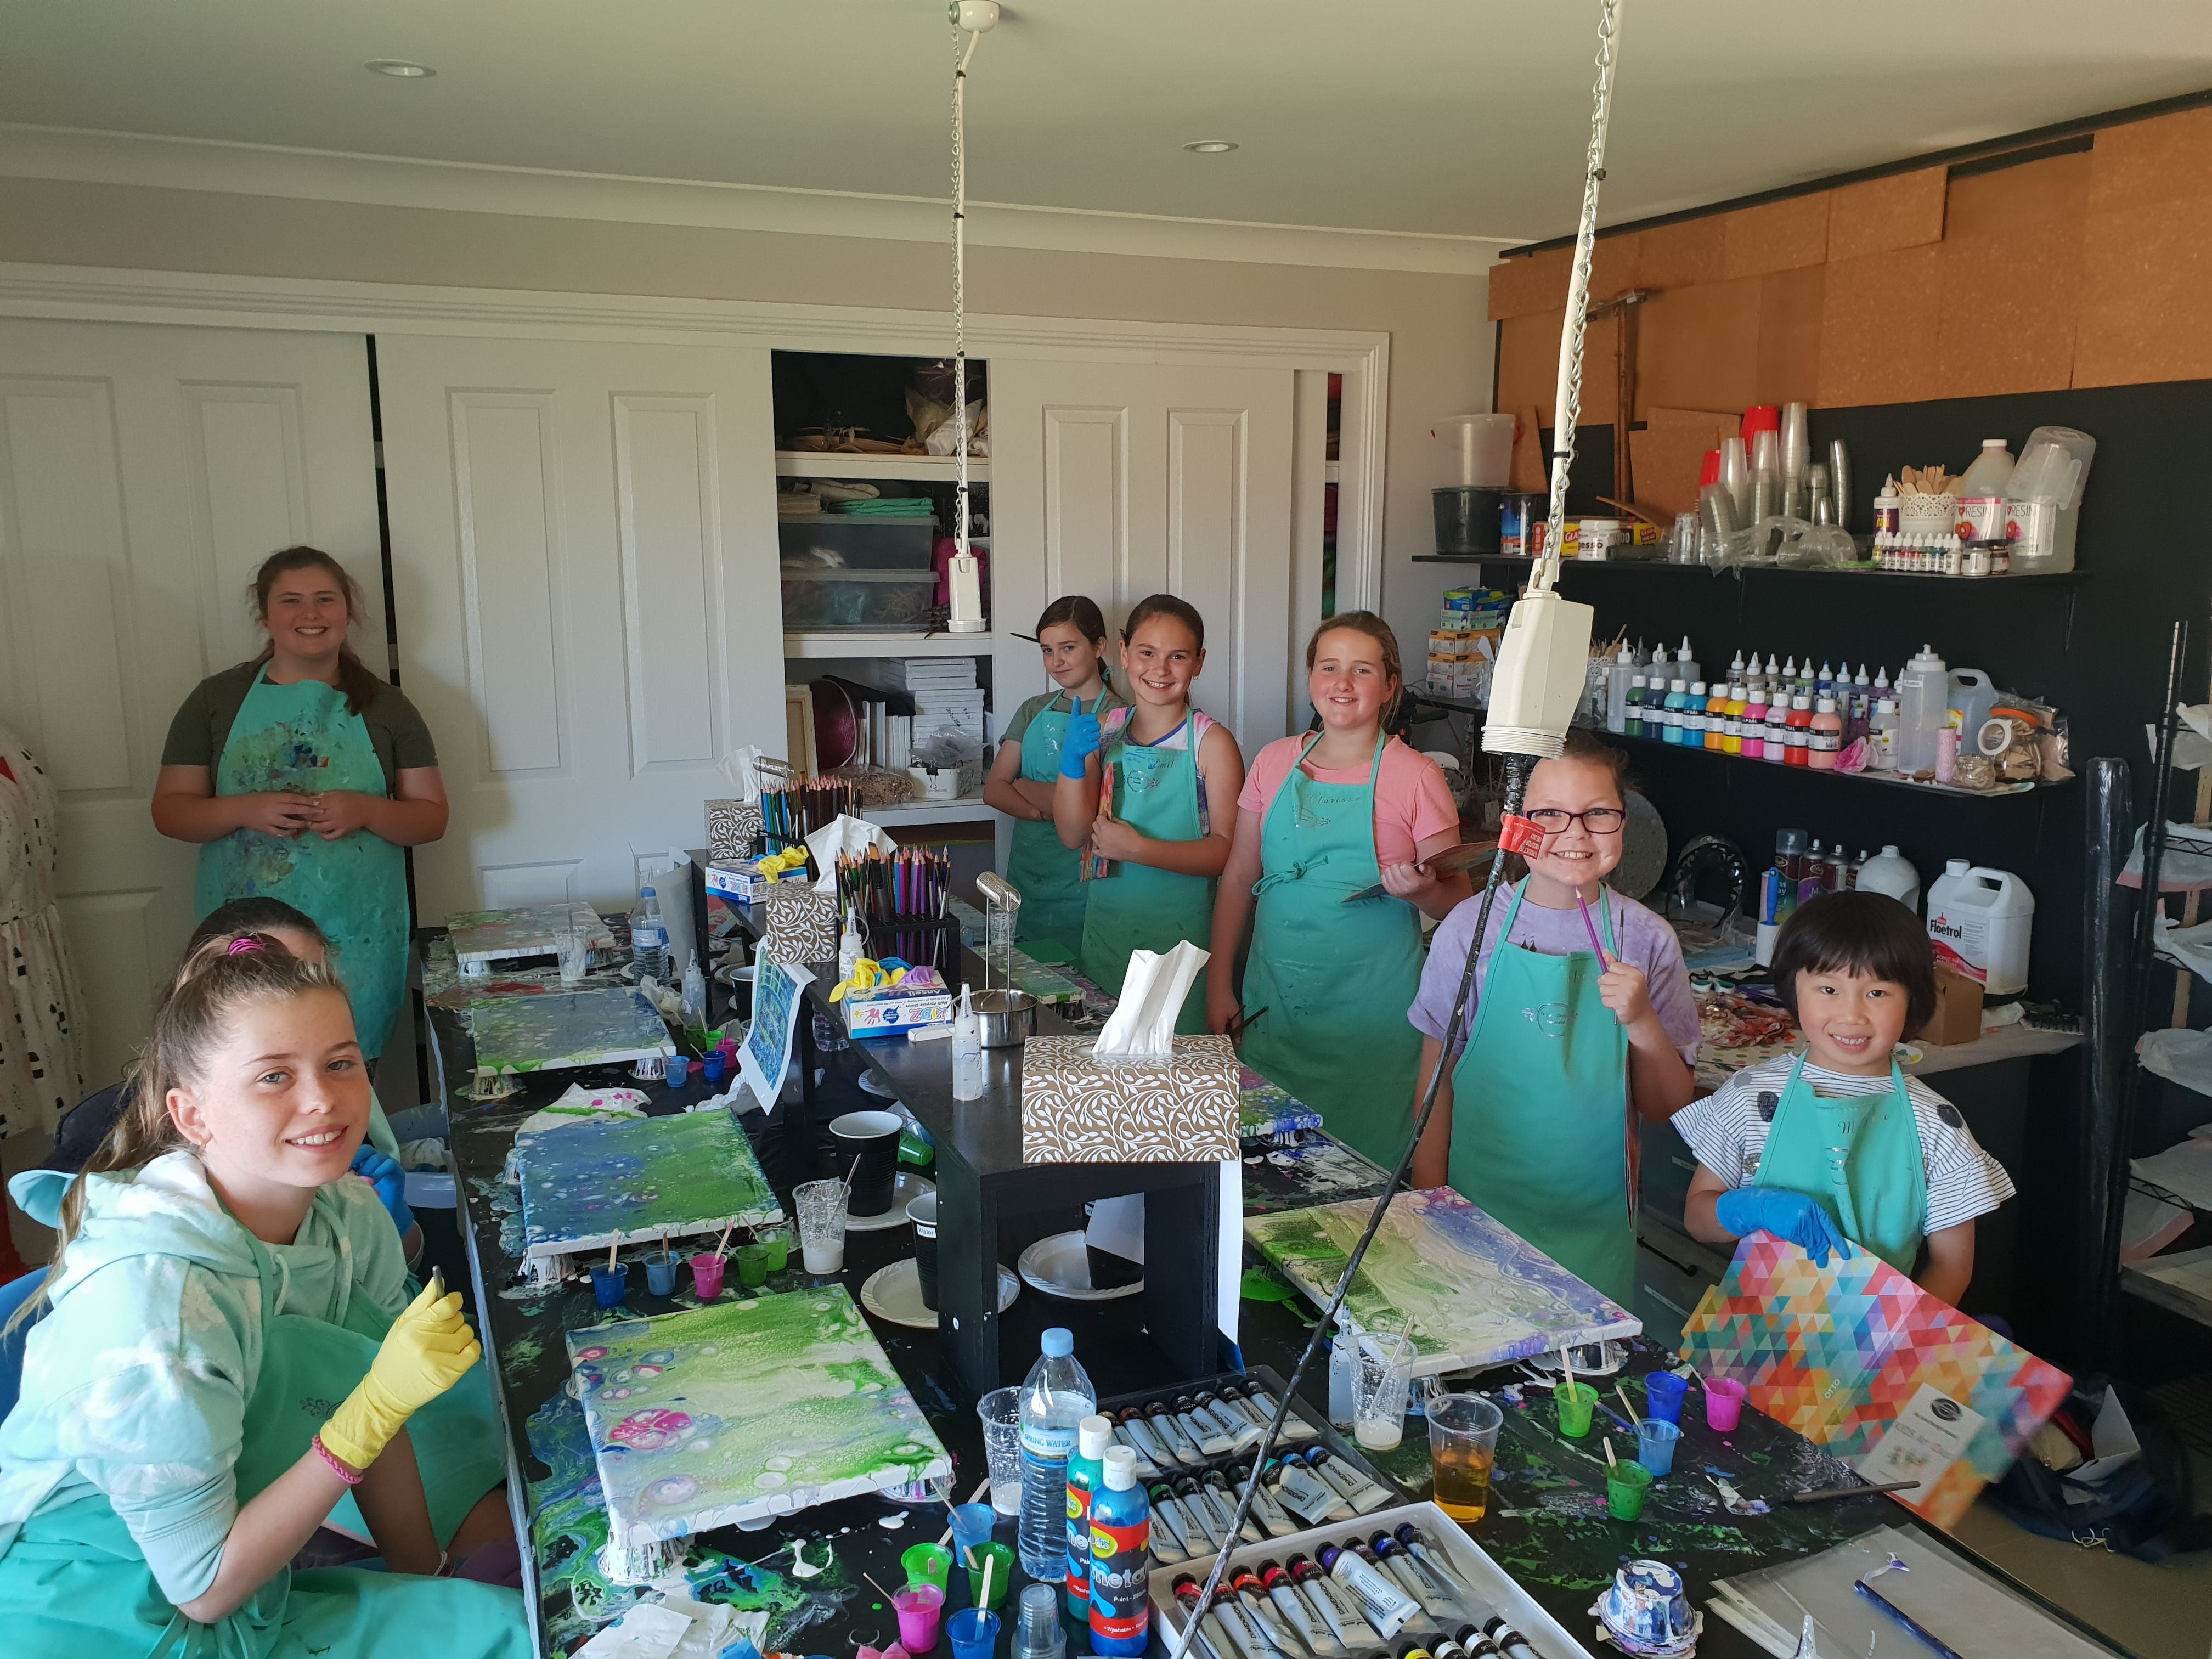 School holidays - Kids art class - Painting - Newcastle Accommodation